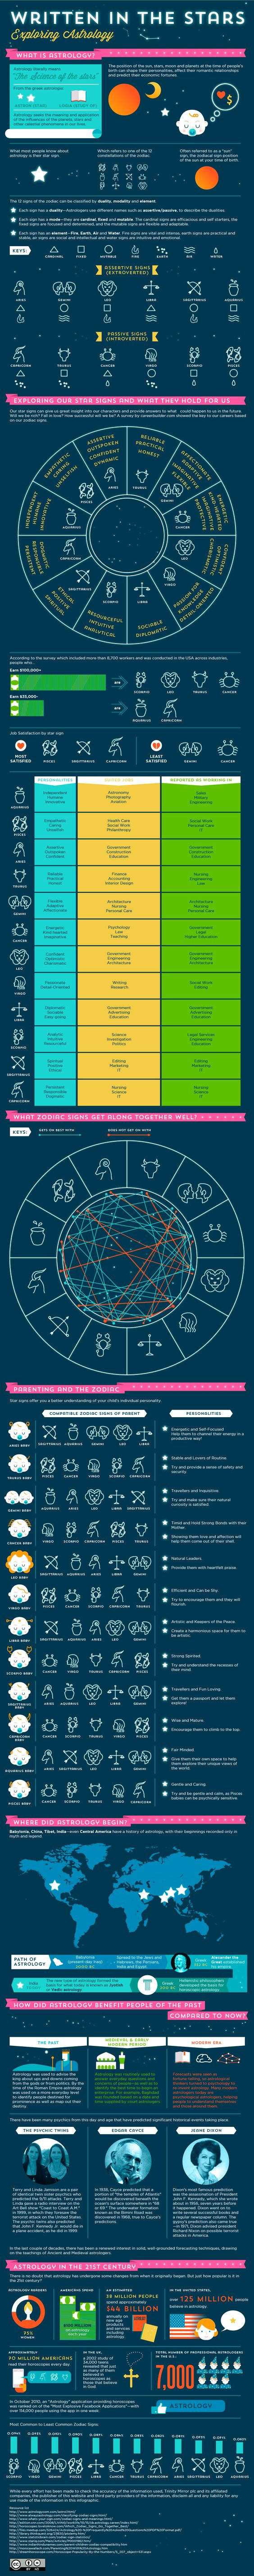 In this infographic we delve into the world of astrology, we explore the signs of the zodiac and how each of them are classified, what do our star sig